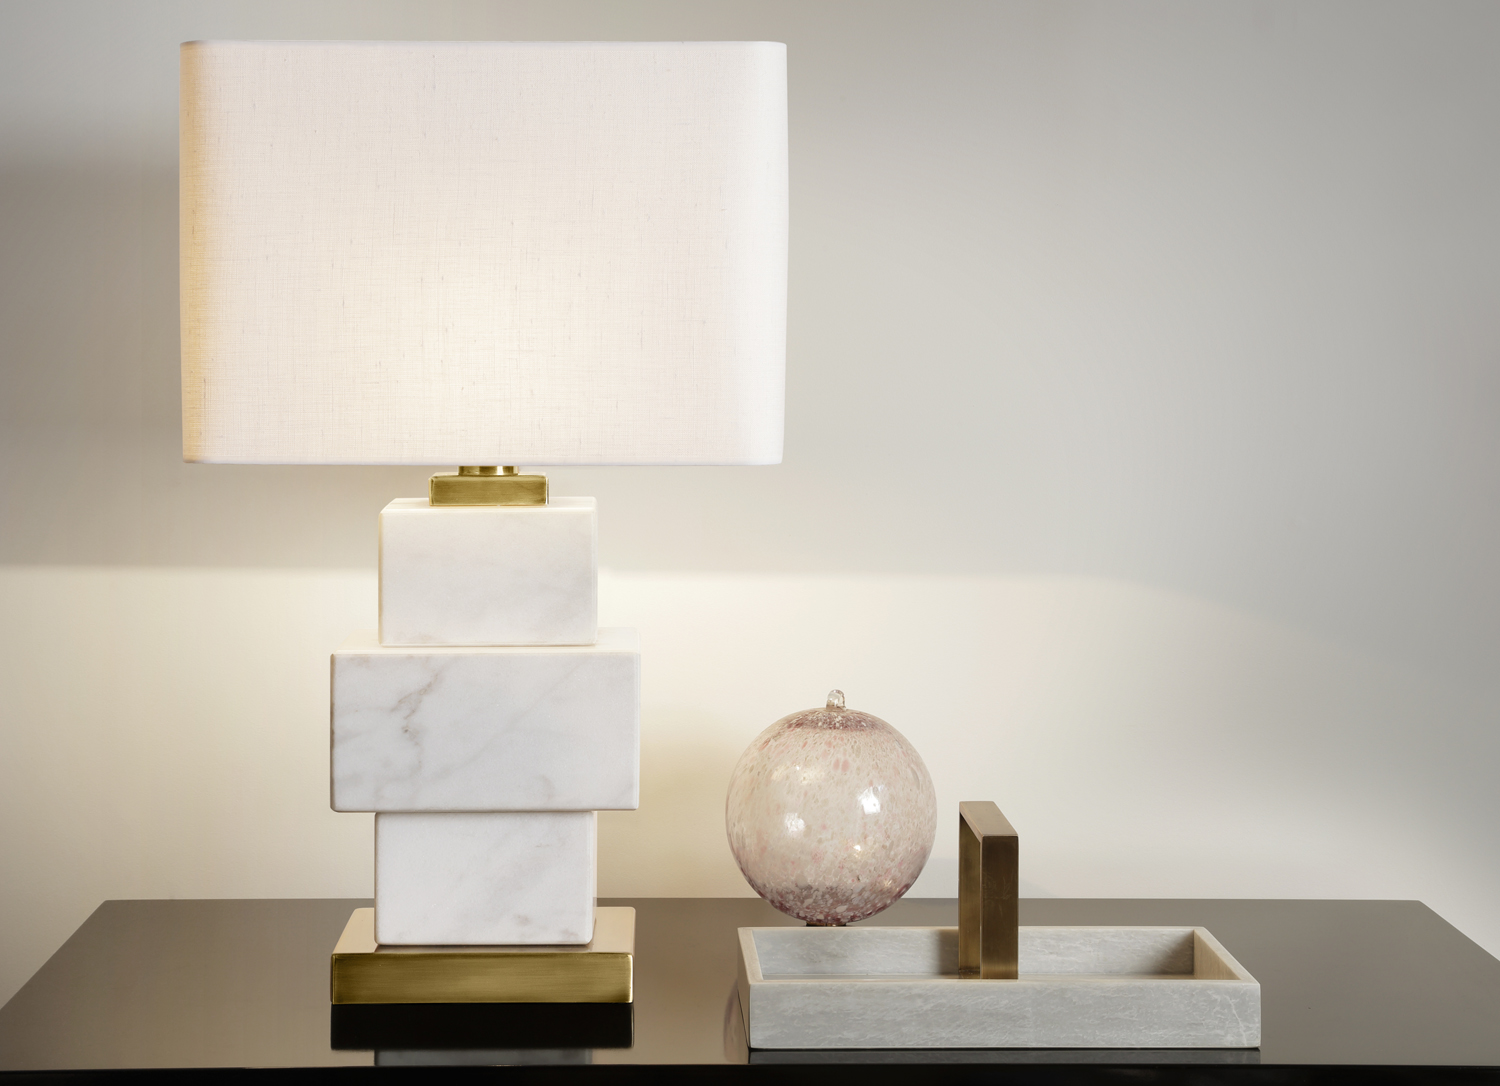 12_2017_JPM_HOME-JPM_Lighting_Trays Triple White Dionysos Lamp with gold details Large White Marble Tray with gold handle decorated.jpg